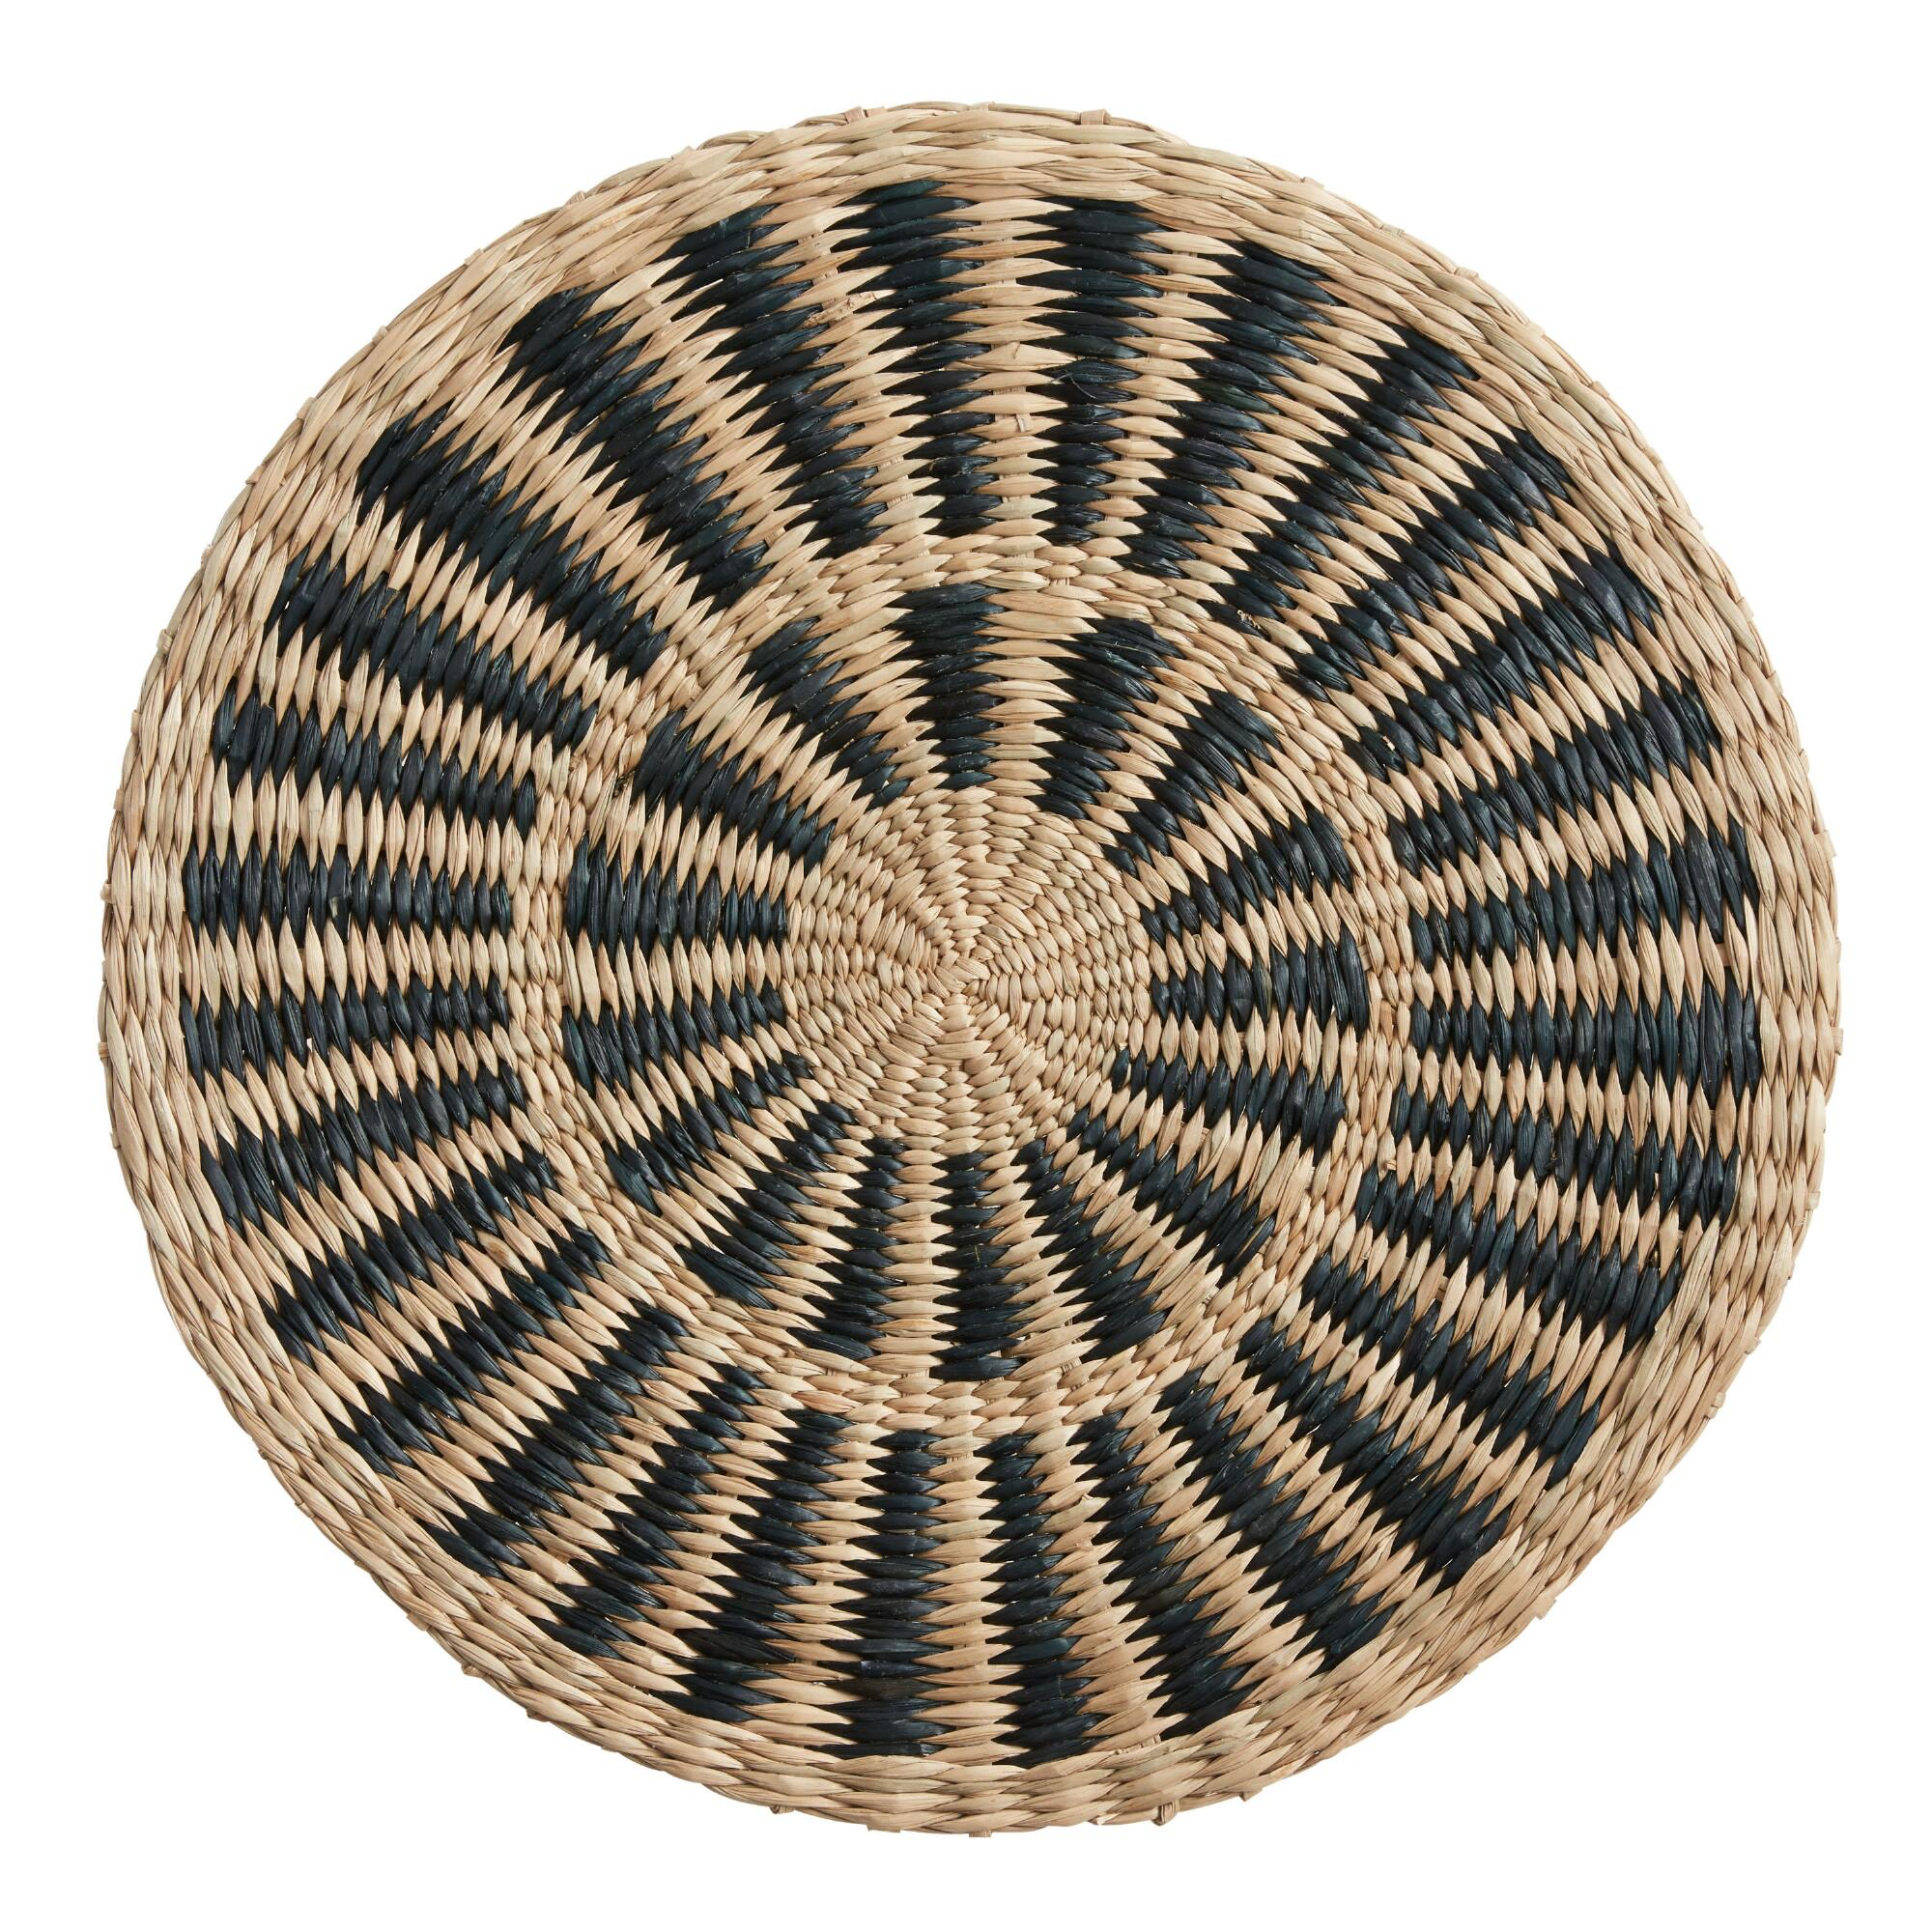 Round Natural And Black Woven Fiber Placemat $5.99